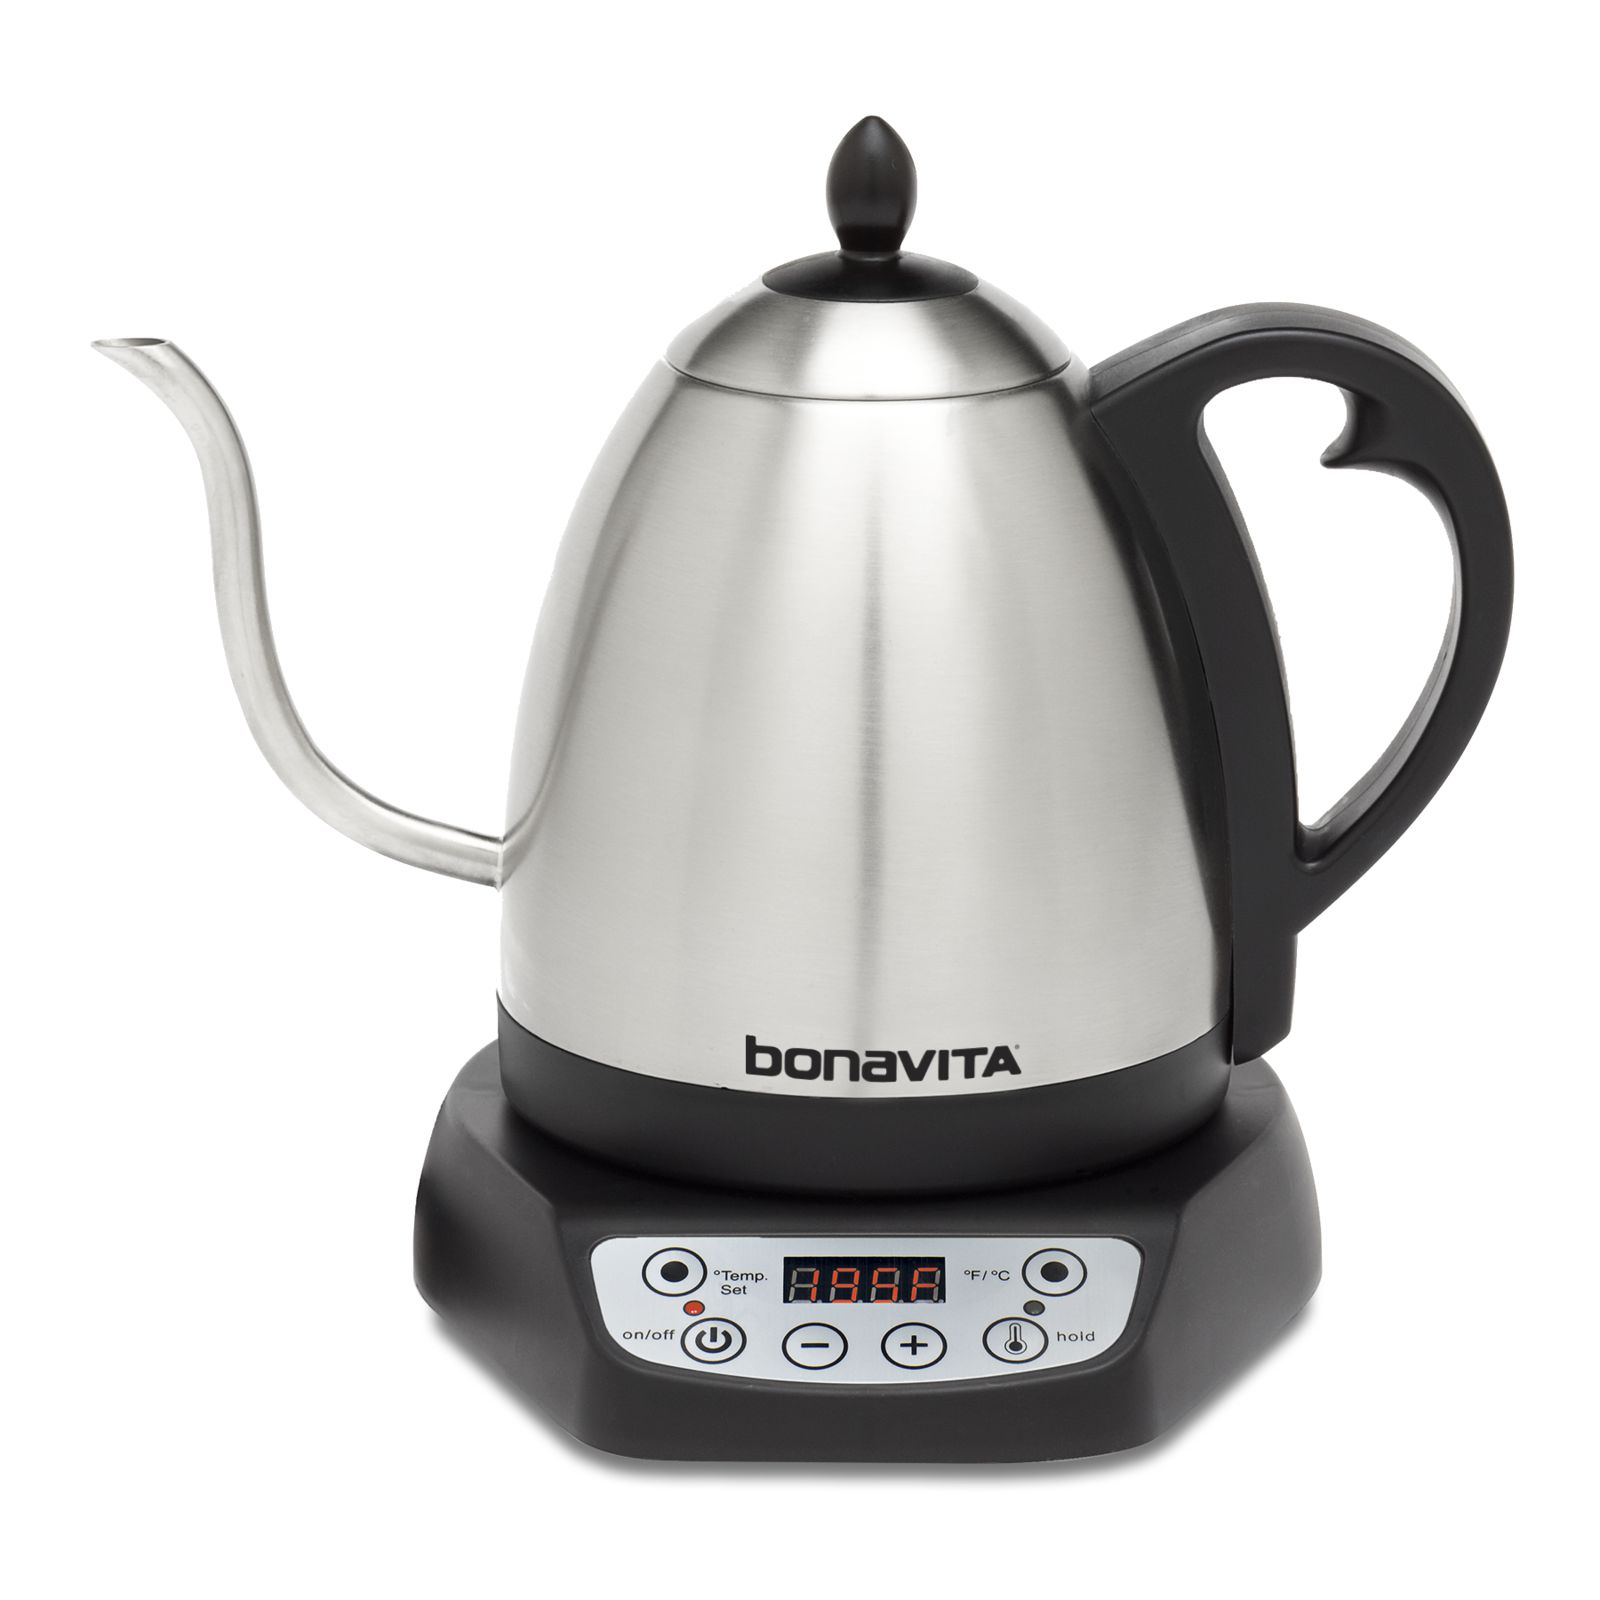 Bonavita 1.0L Variable Temperature Gooseneck Electric Kettle, Silver